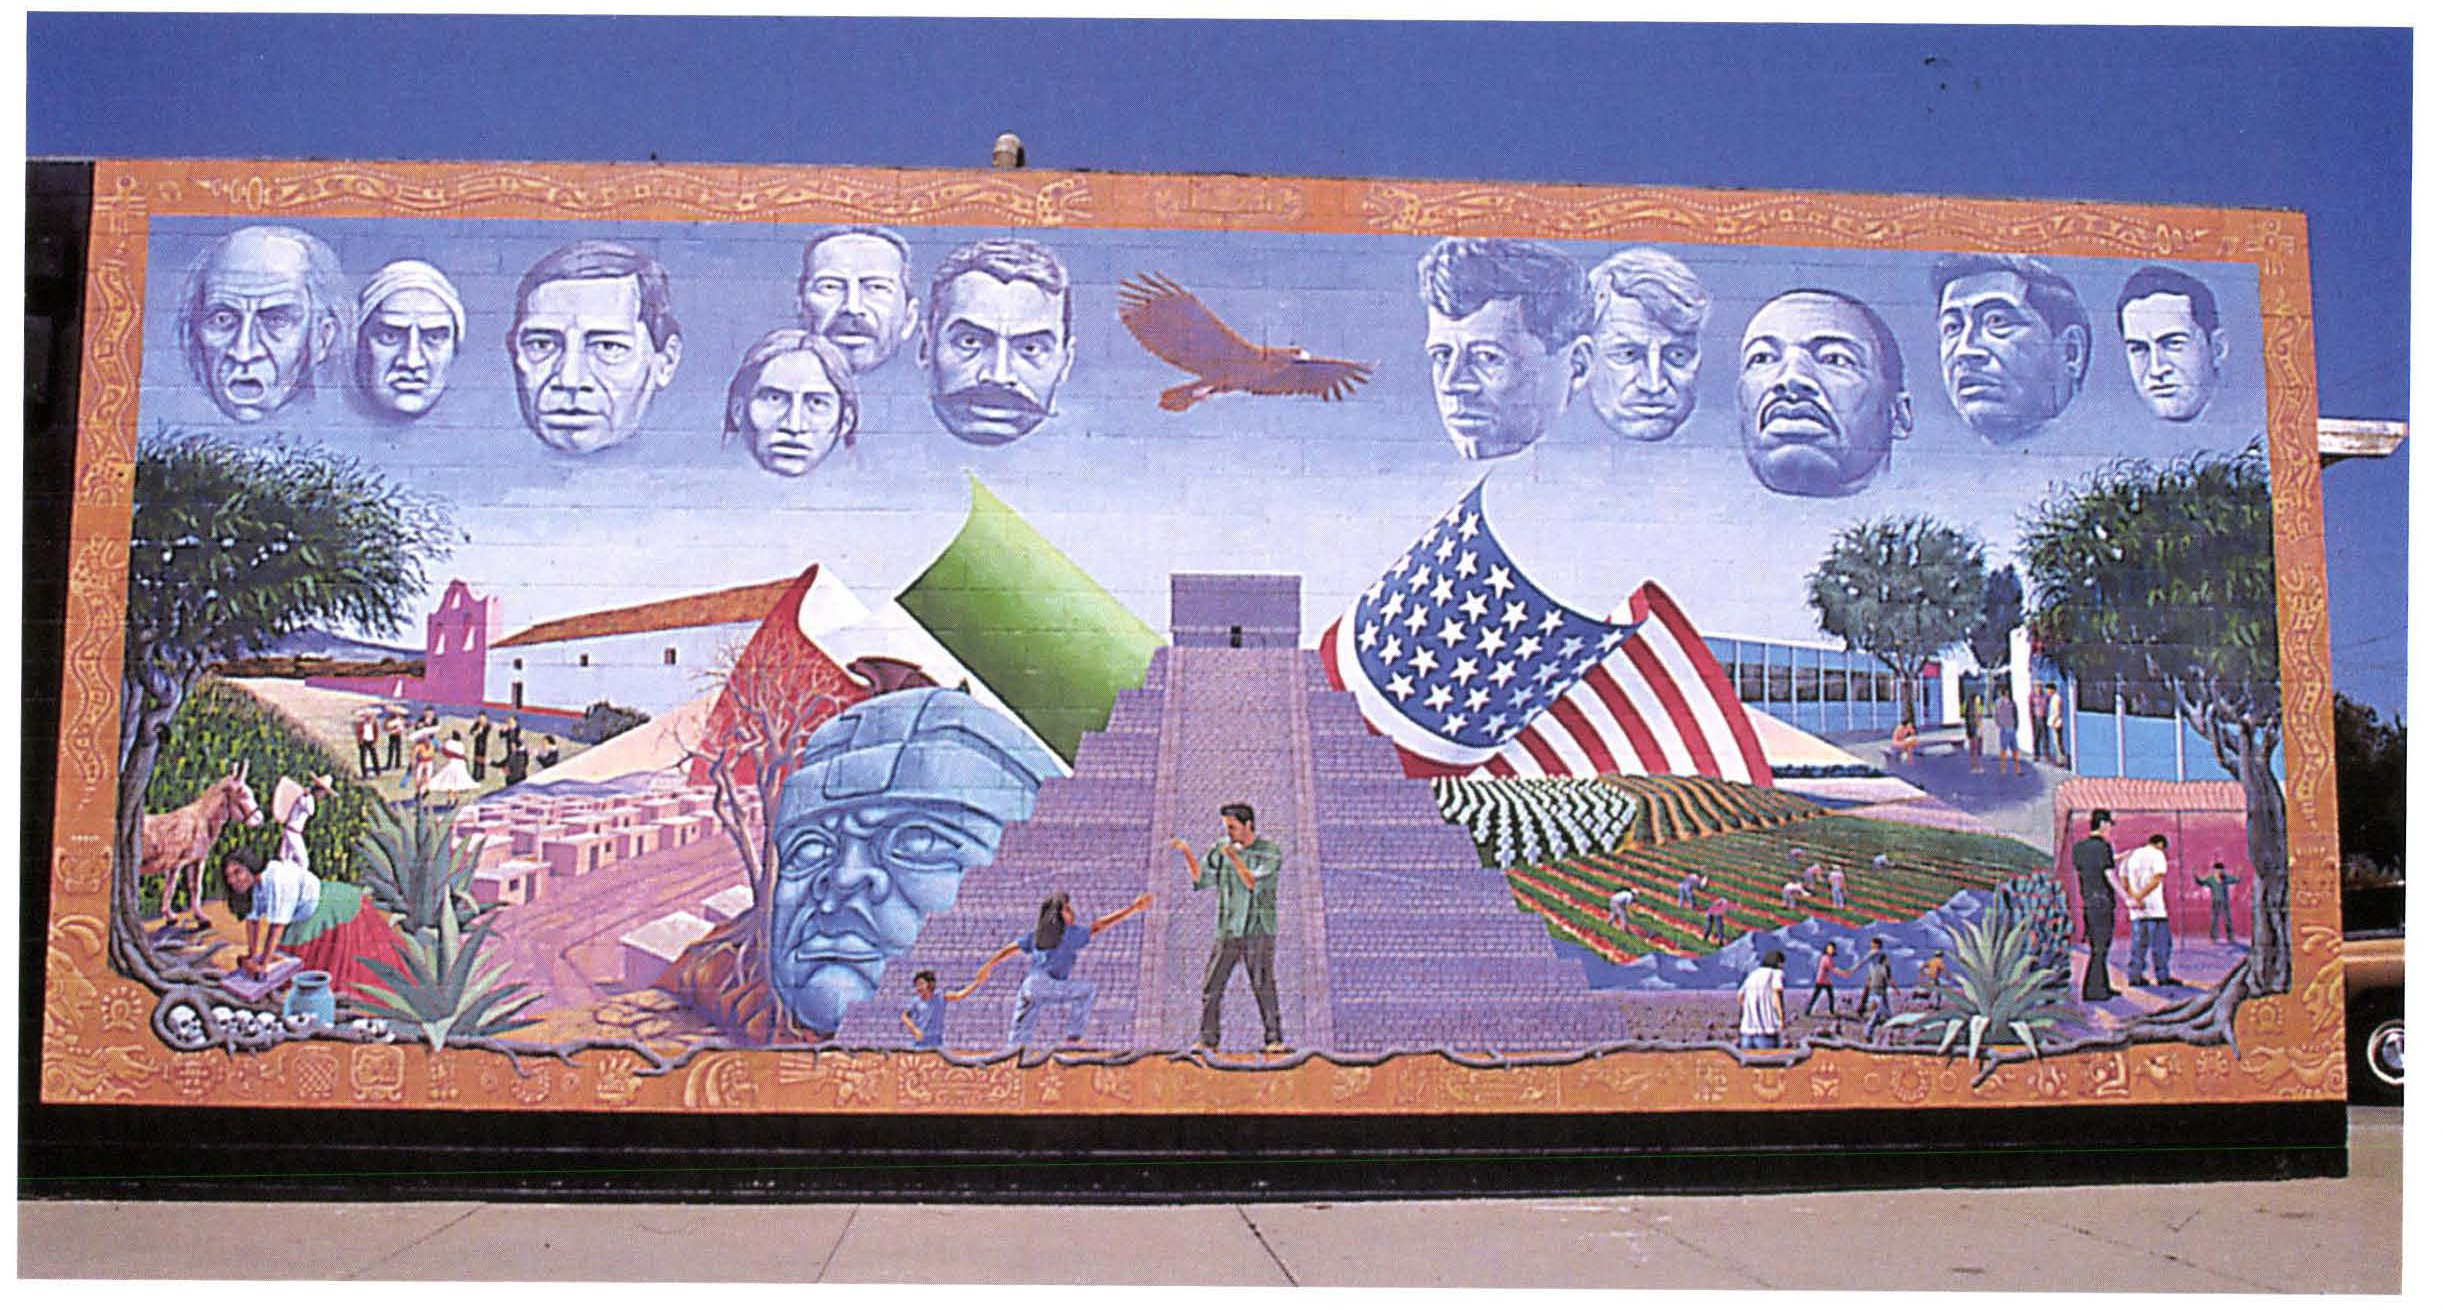 Les latinos des usa seize murales chicanos du sud ouest for Mural una familia chicana